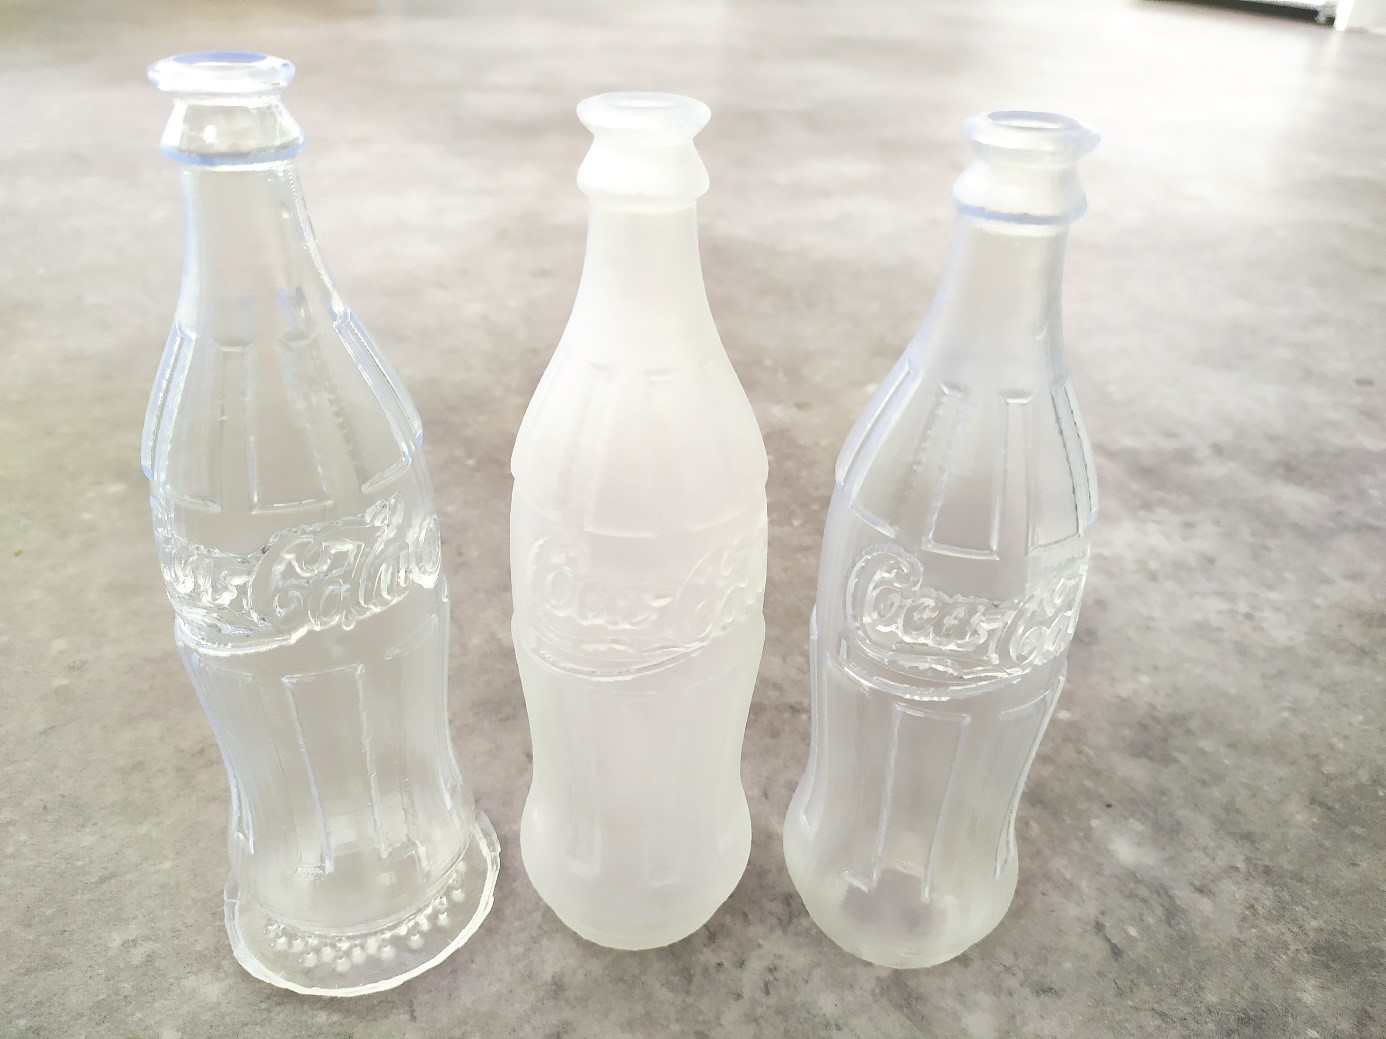 coca cola can 3d-printed in transparant resin